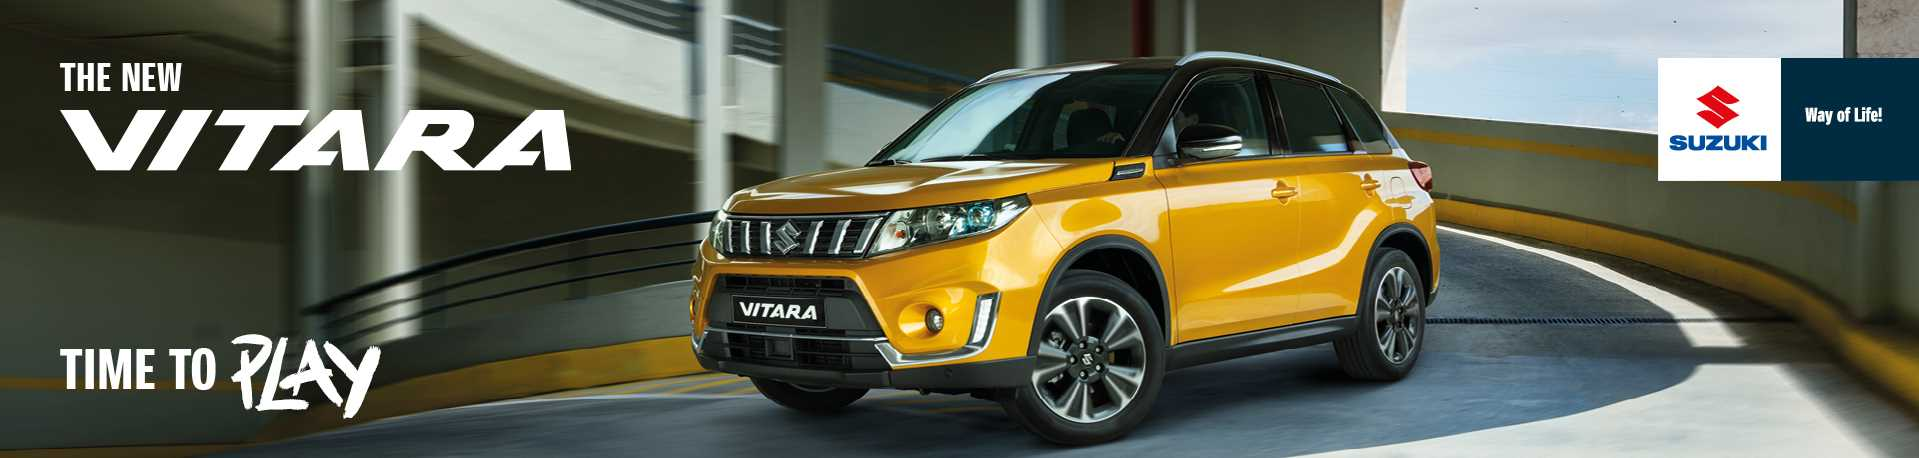 The new Vitara, time to play